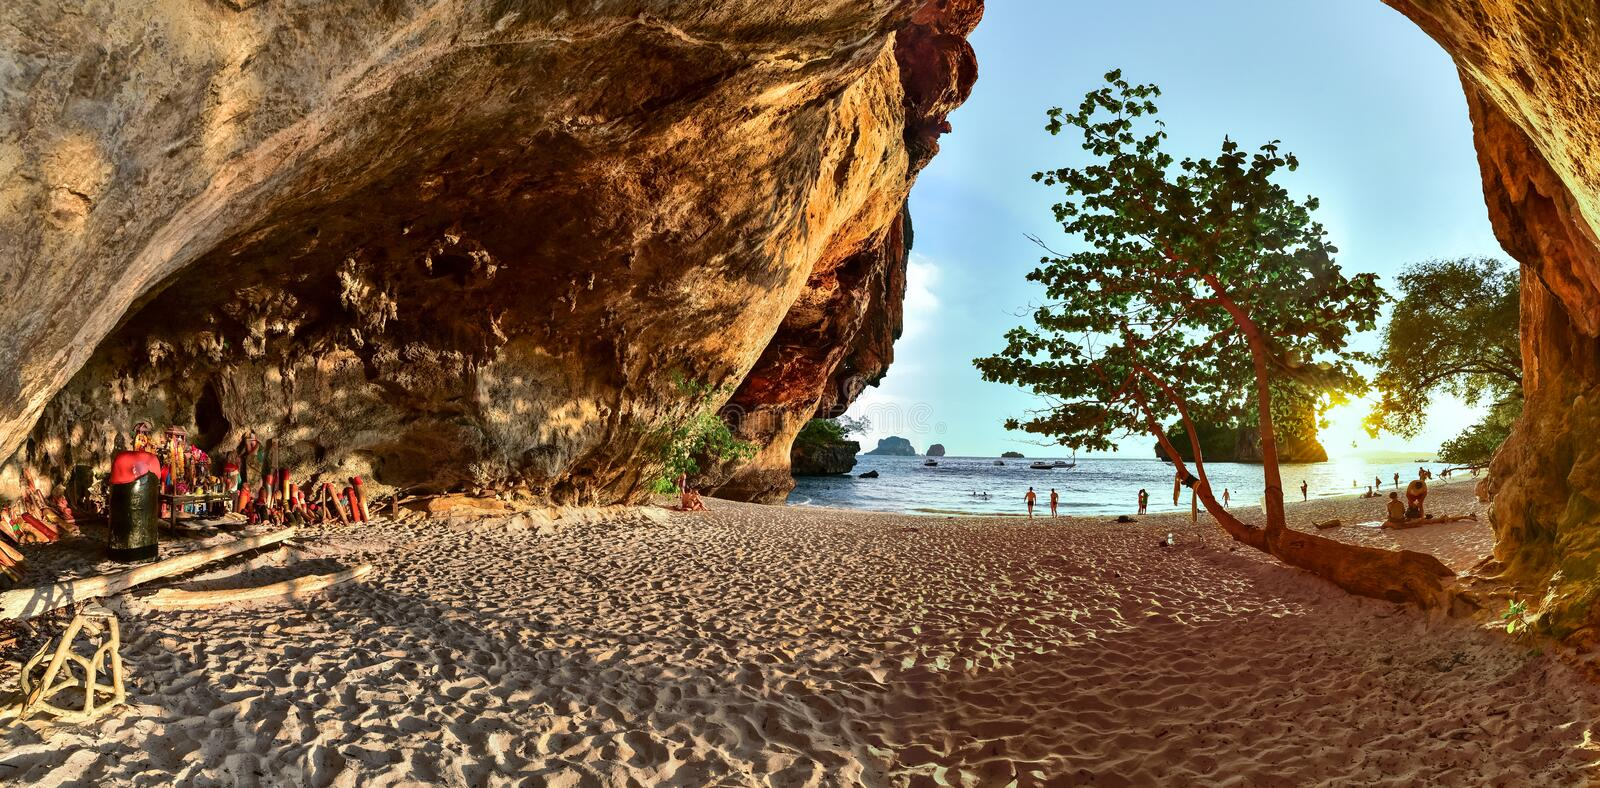 Railay, Phra Nang beach and wooden phalluses in Princess cave. The large panorama, out on the road to Phra Nang beach and wooden phalluses in Princess cave in royalty free stock photo